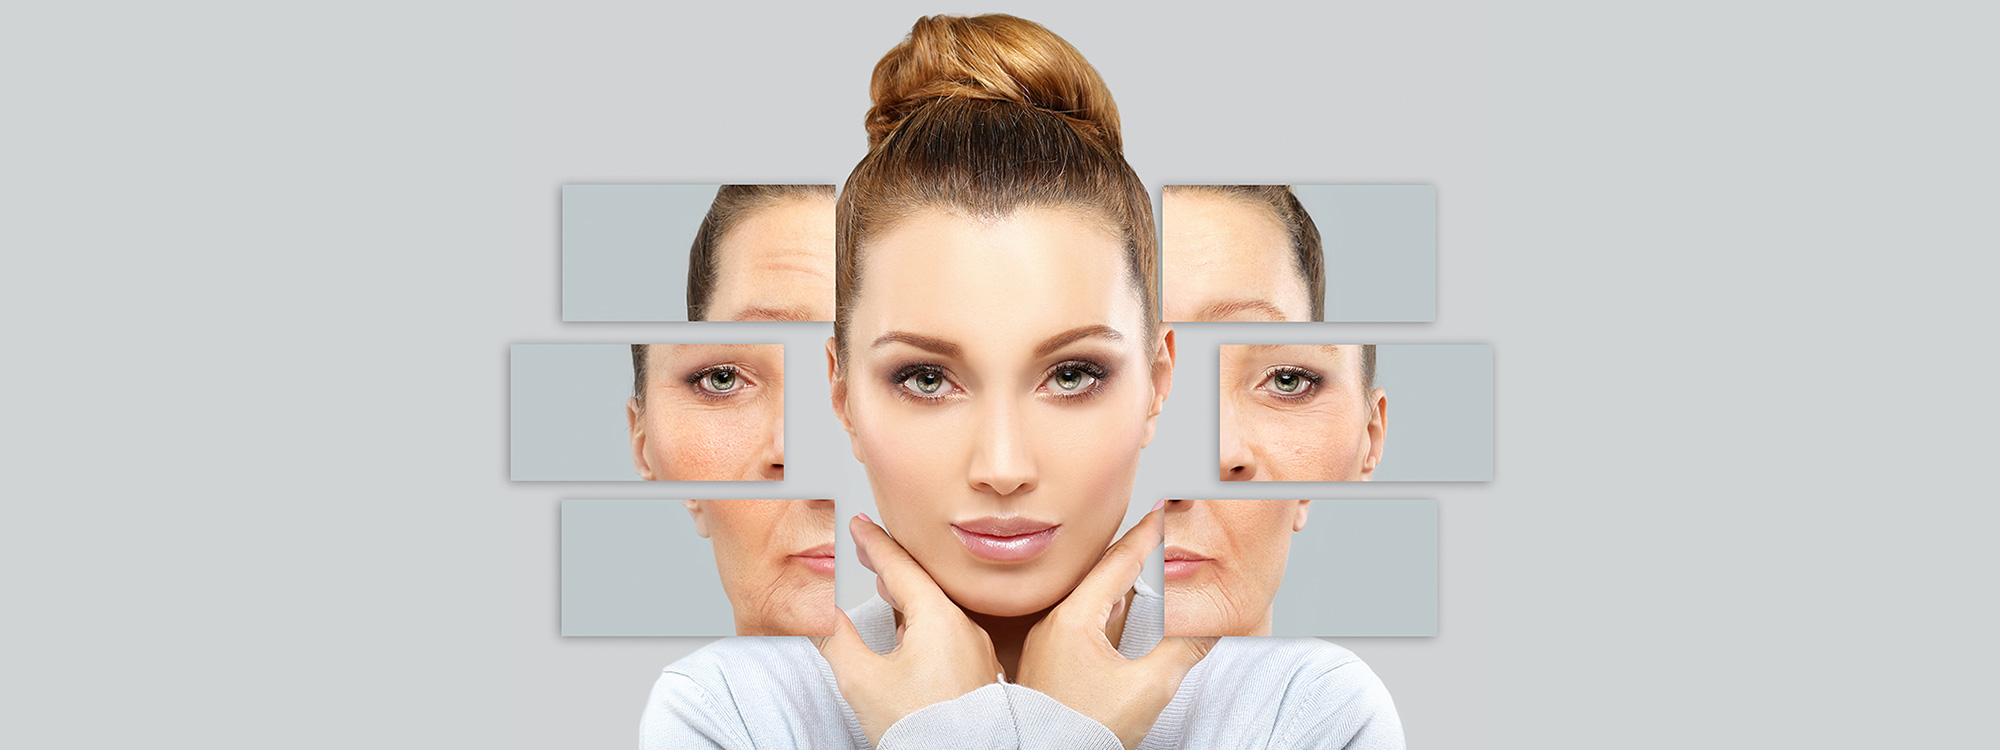 Botox for women to look younger